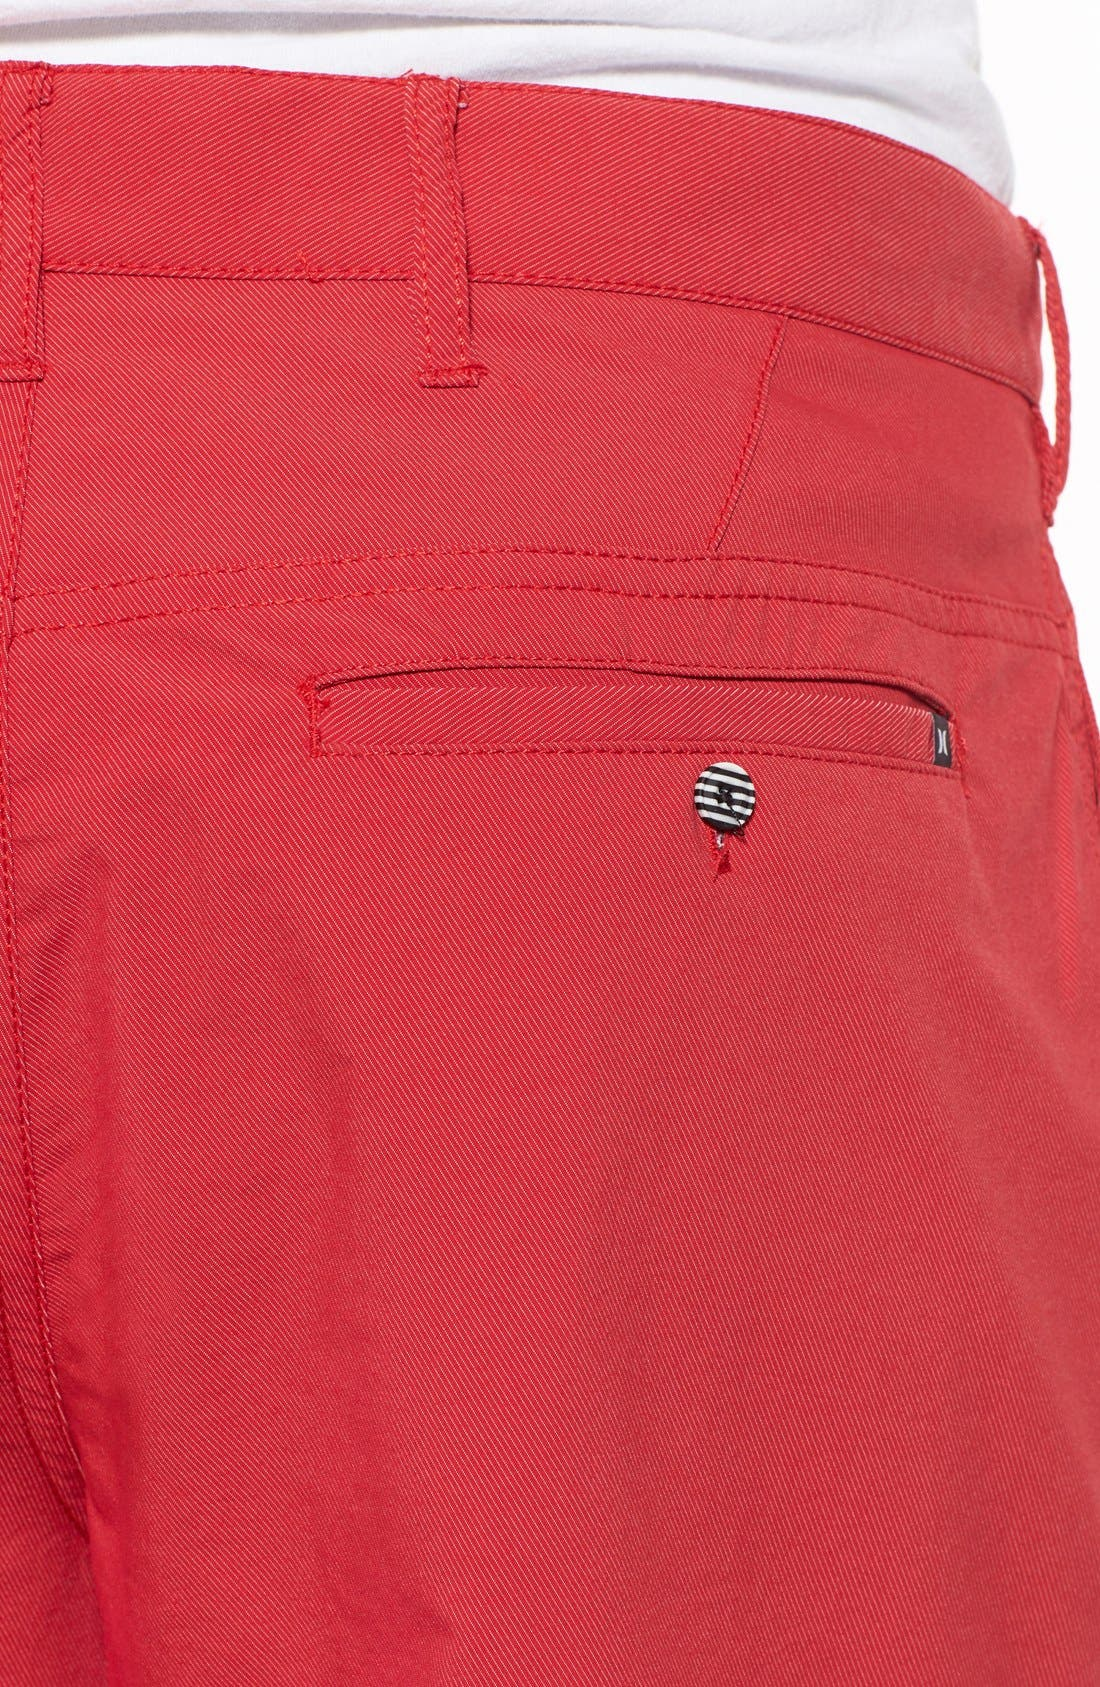 'Dry Out' Dri-FIT<sup>™</sup> Chino Shorts,                             Alternate thumbnail 163, color,